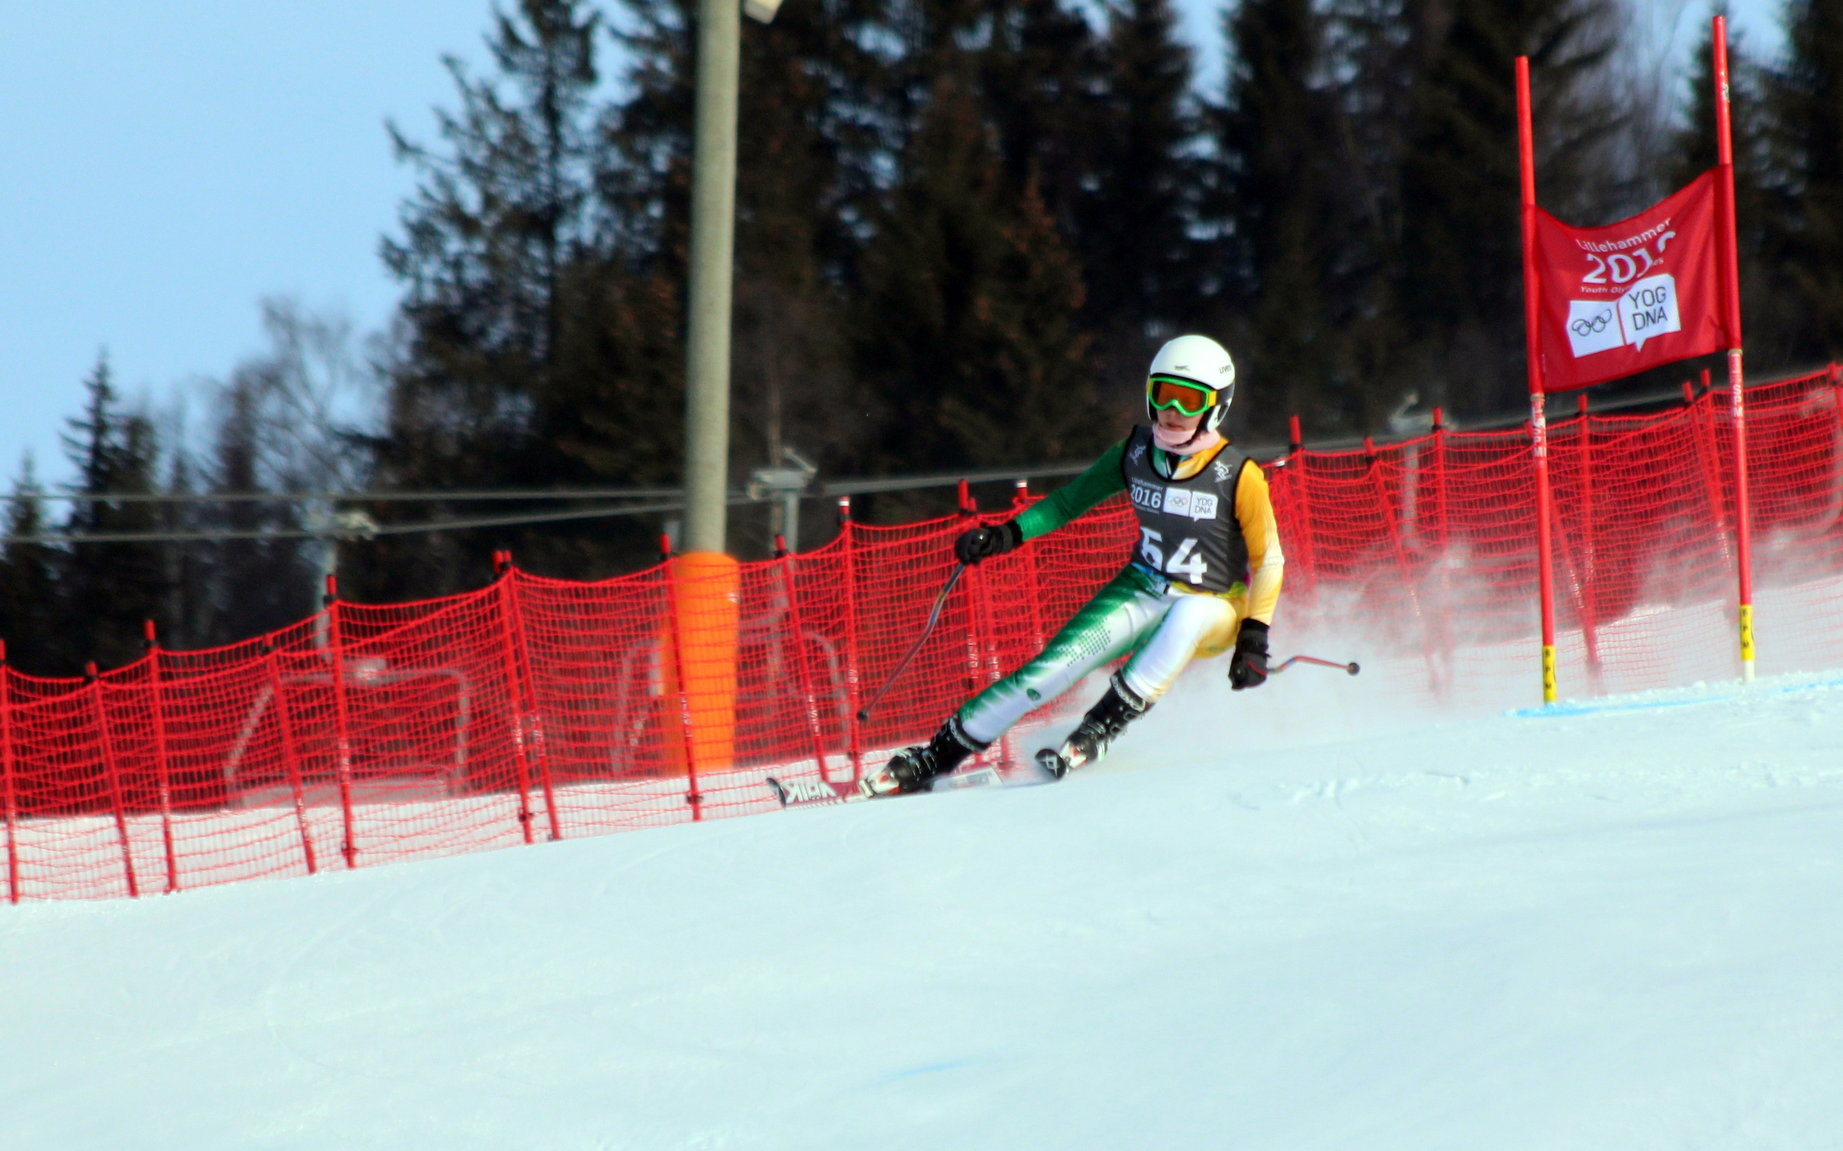 Olivier gets into Giant Slalom action for SA in Norway